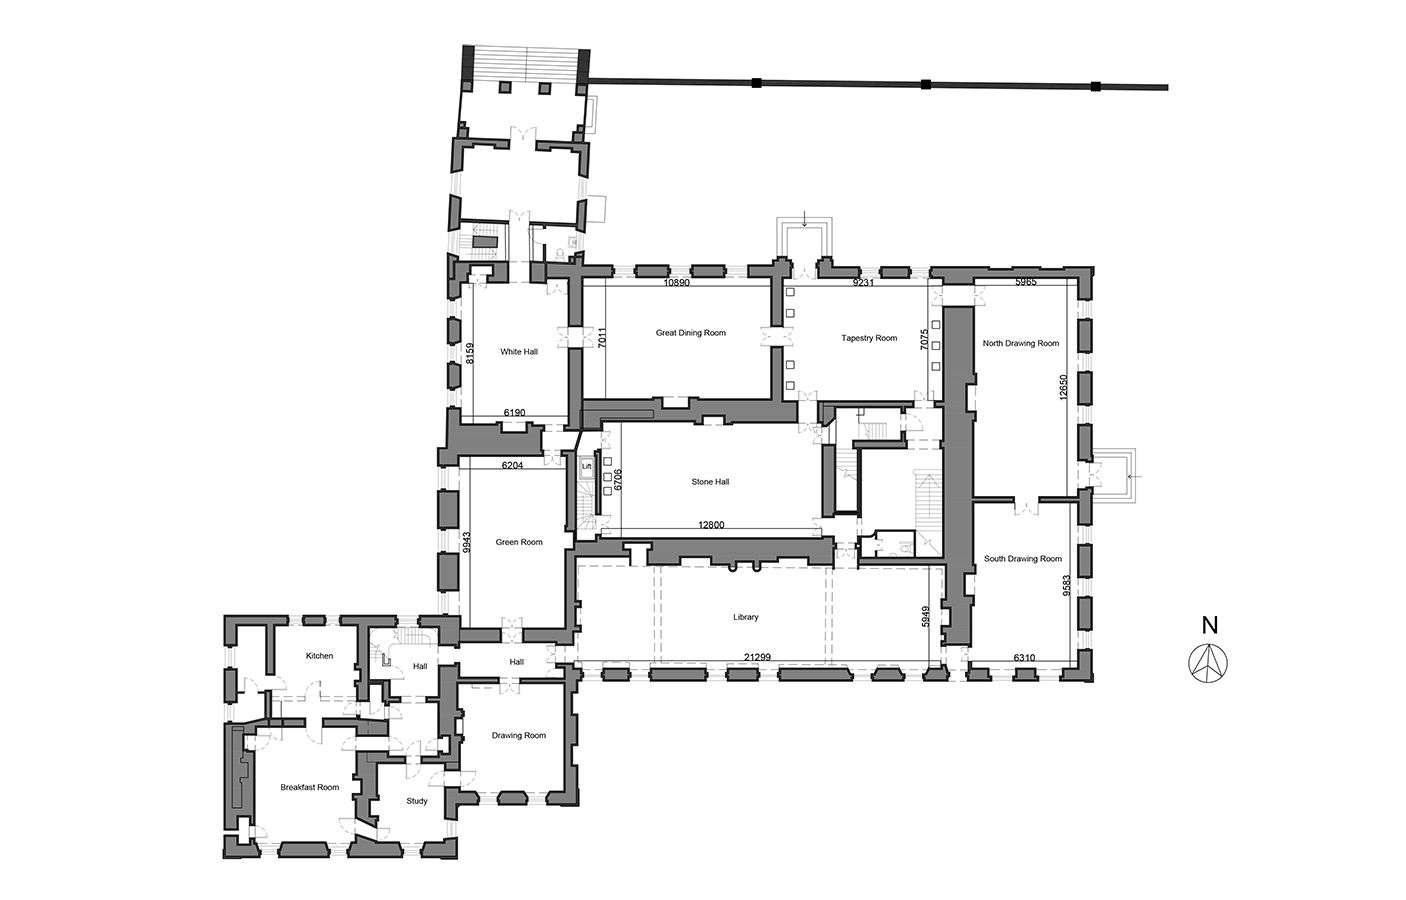 Furthermore medieval manor house on floor plans with central - St Giles House St Giles Wimborne Dorset Ground Floor Plan